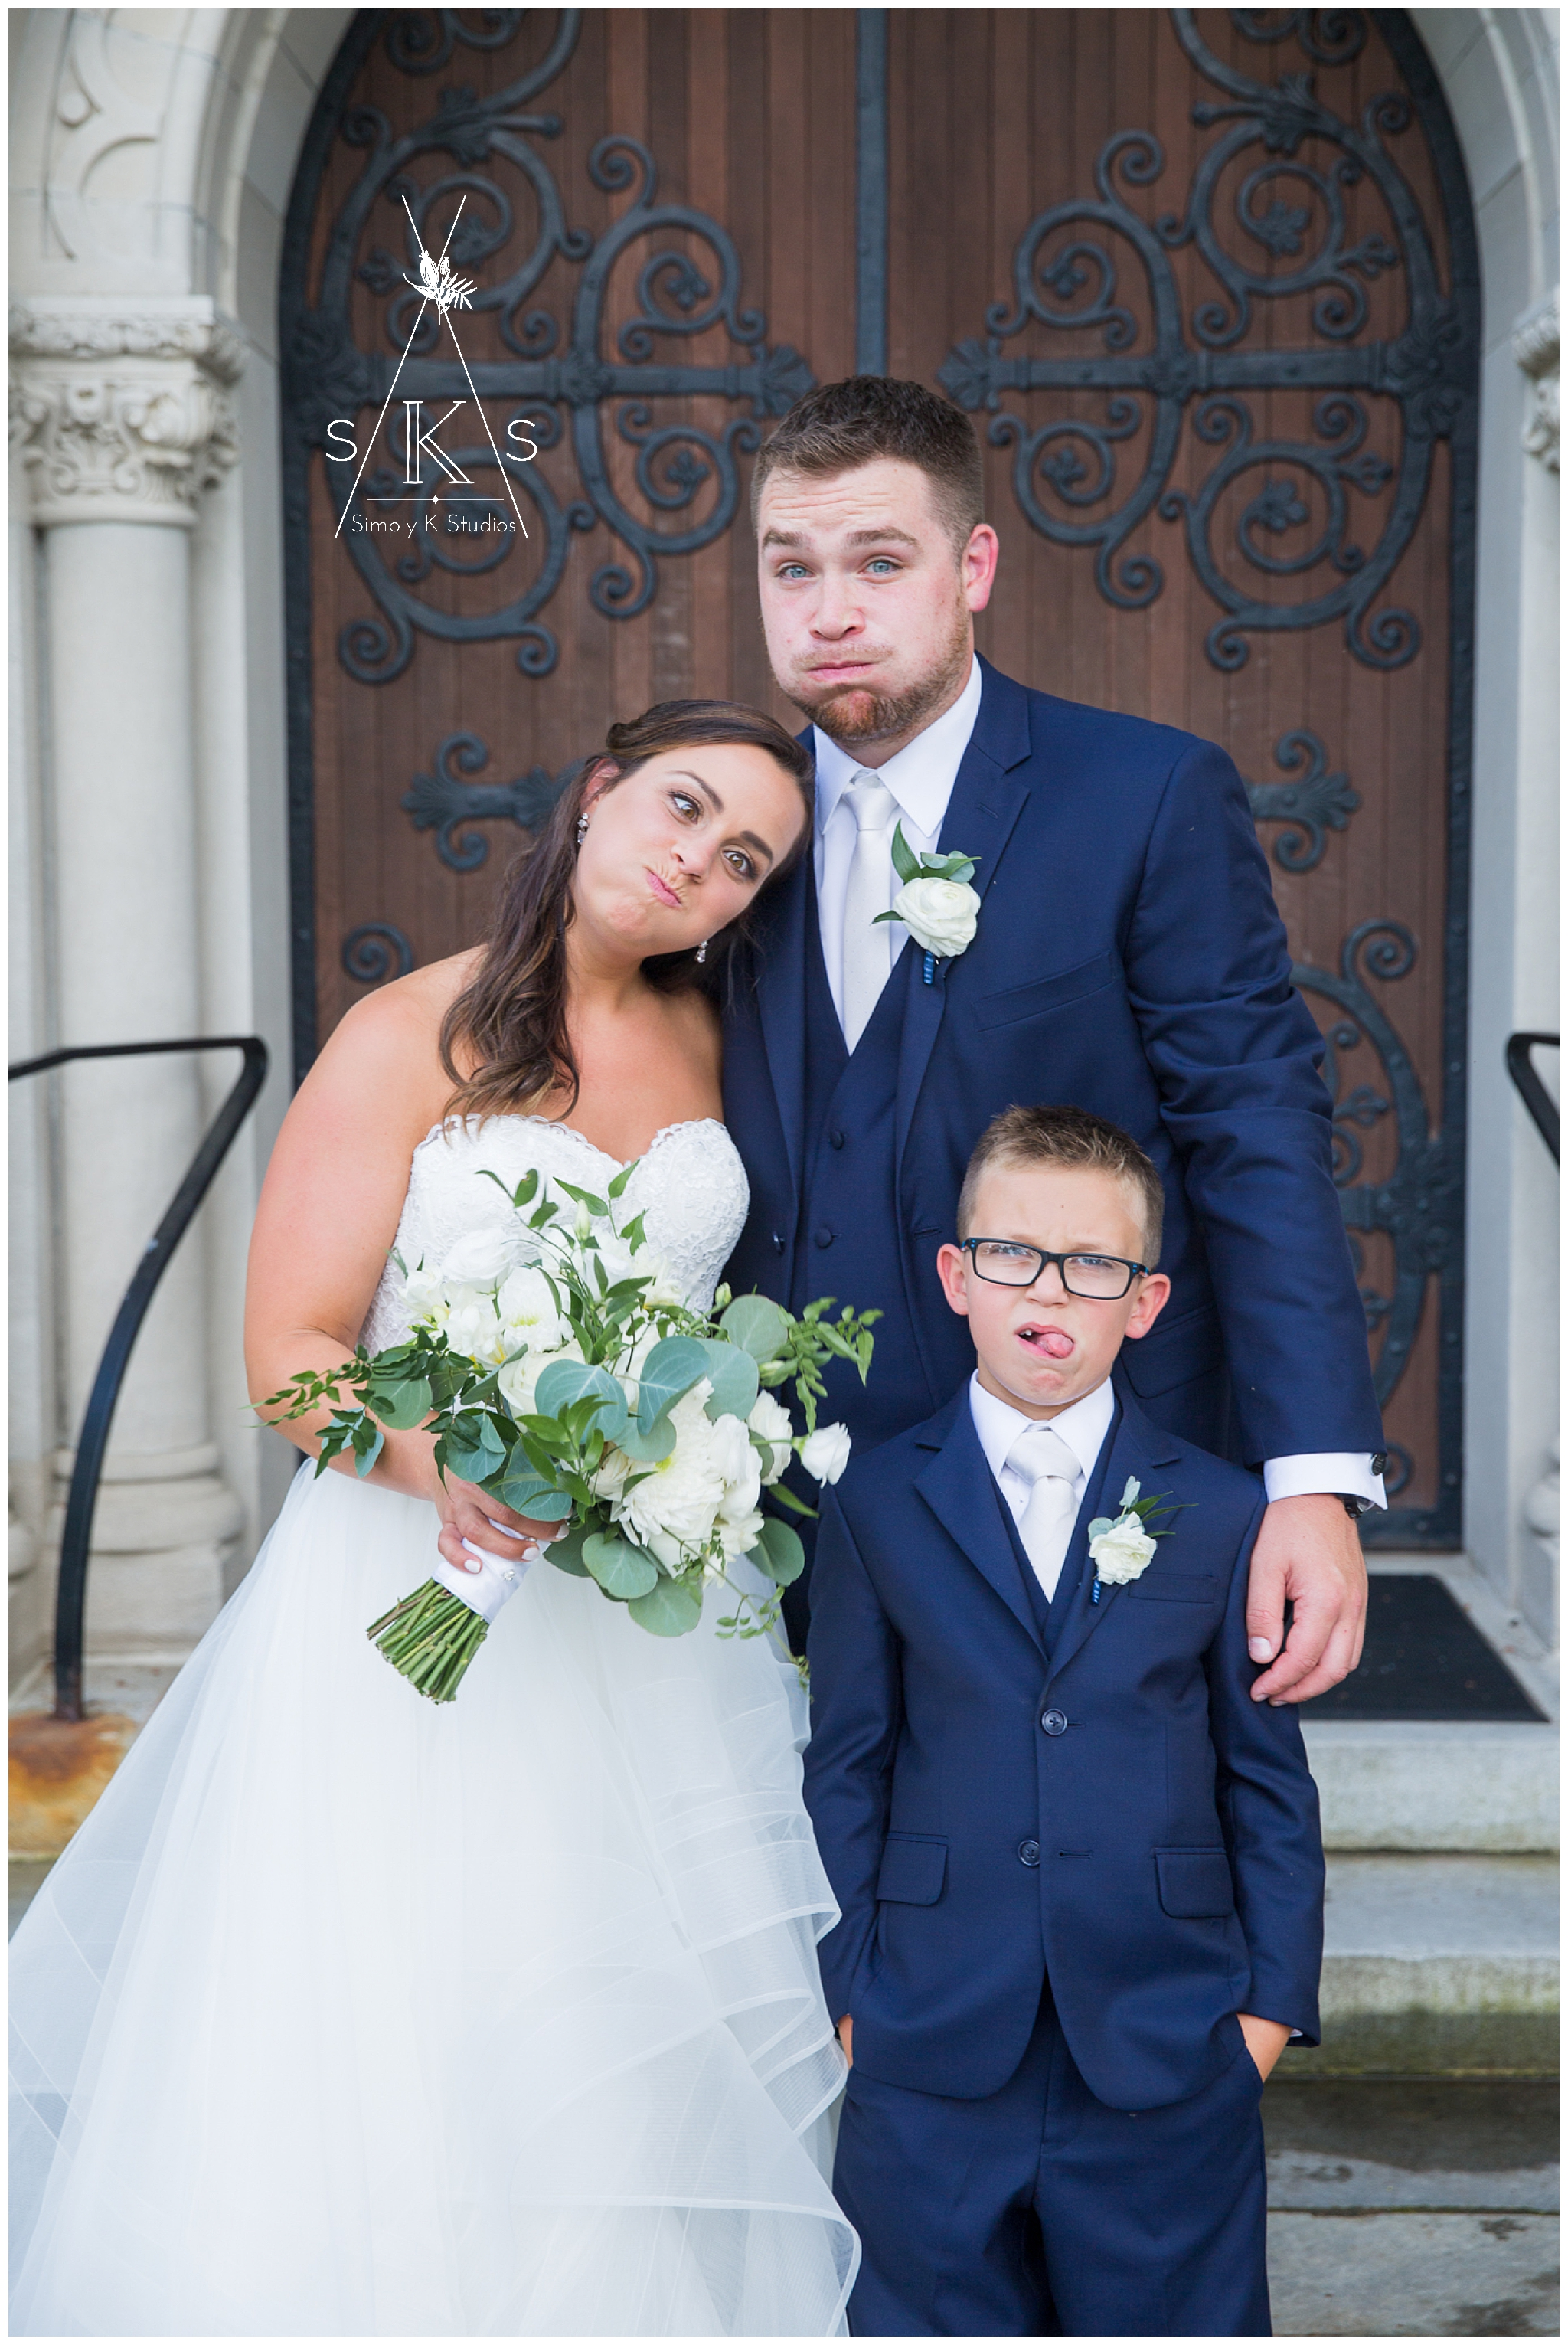 55 Best Family Photos at a Wedding.jpg